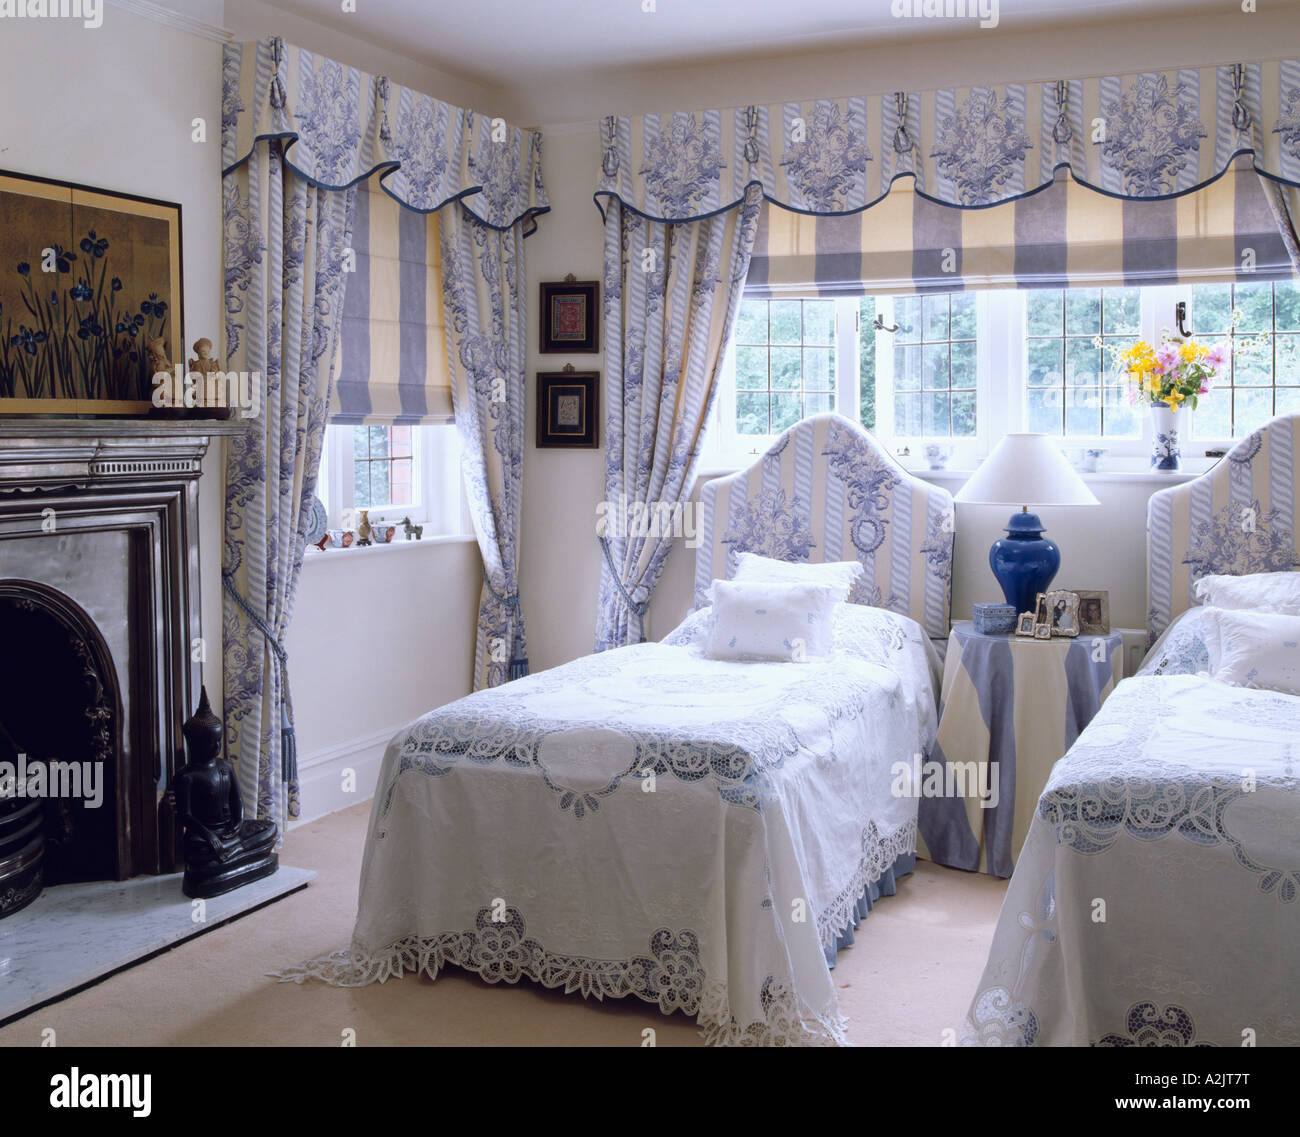 Bedroom with floral linen and curtains and striped blinds ...